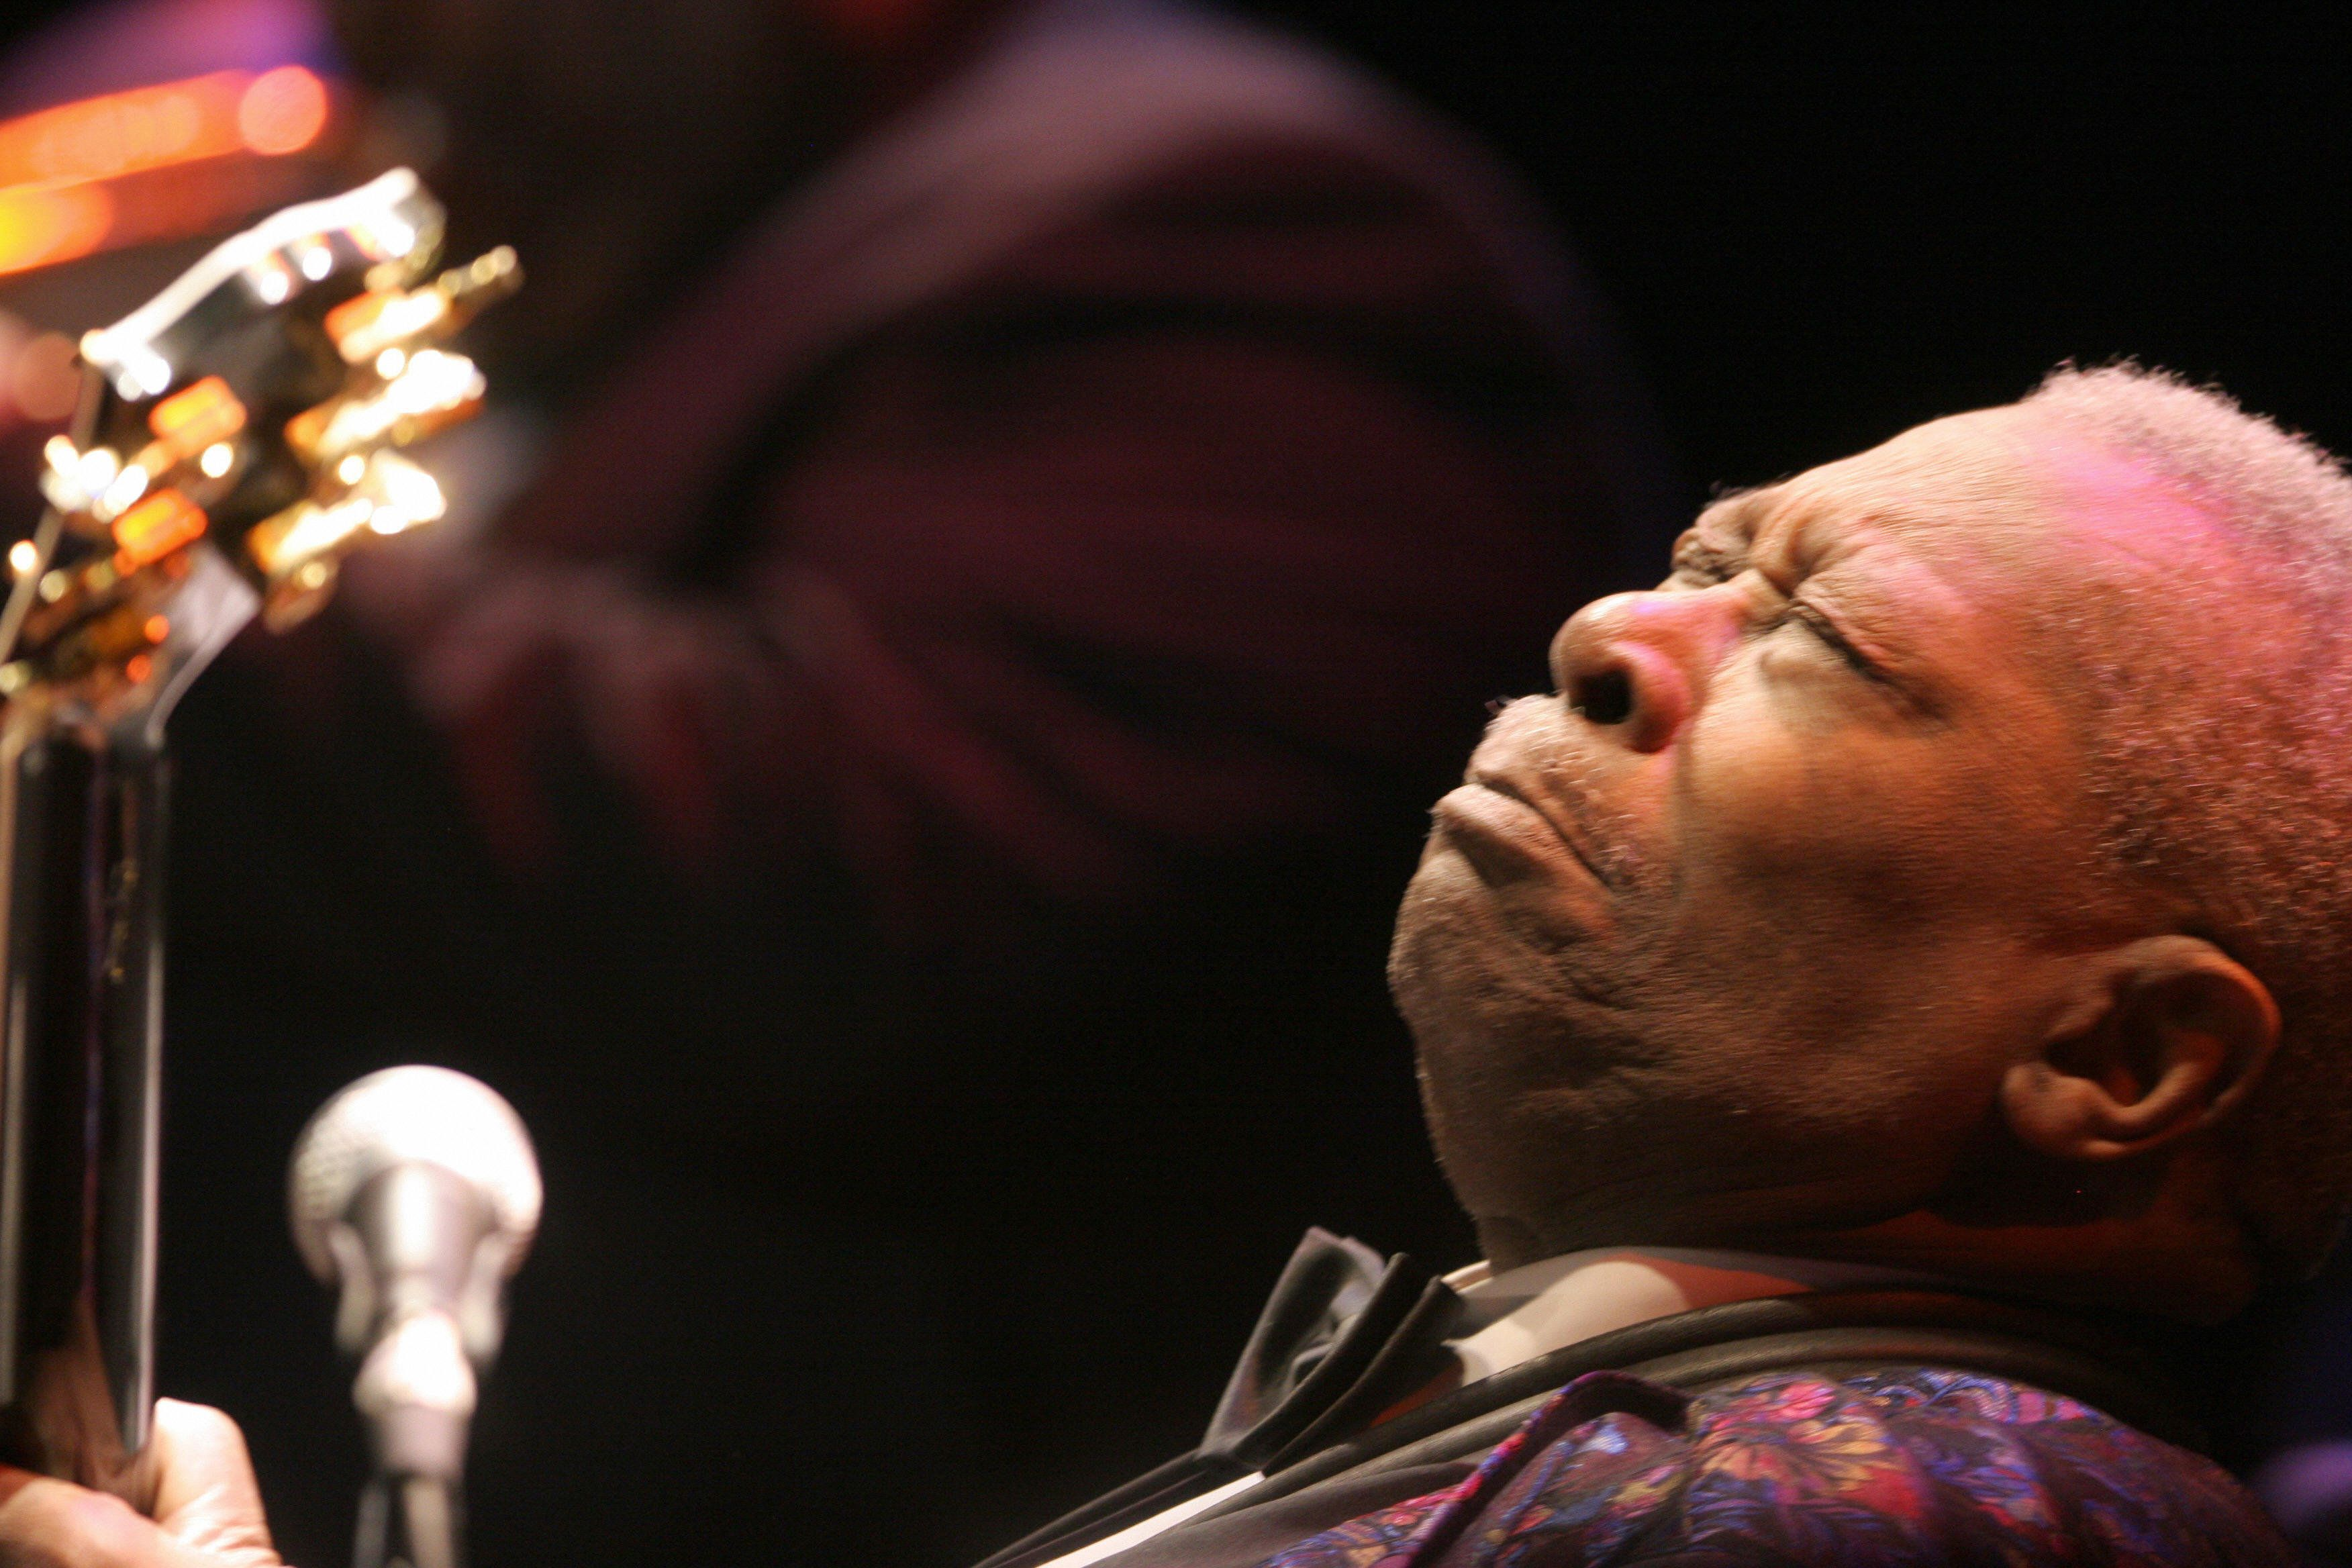 Anaheim, UNITED STATES:  Blues music legend B.B. King kicks off his '60th Anniversary Tour' in Anaheim, California, 02 January 2007.  The 81-year-old blues man, who has a total of 14 Grammy Awards to his name, launched his professional career in 1947 in Memphis.   AFP PHOTO / ROBYN BECK  (Photo credit should read ROBYN BECK/AFP/Getty Images)